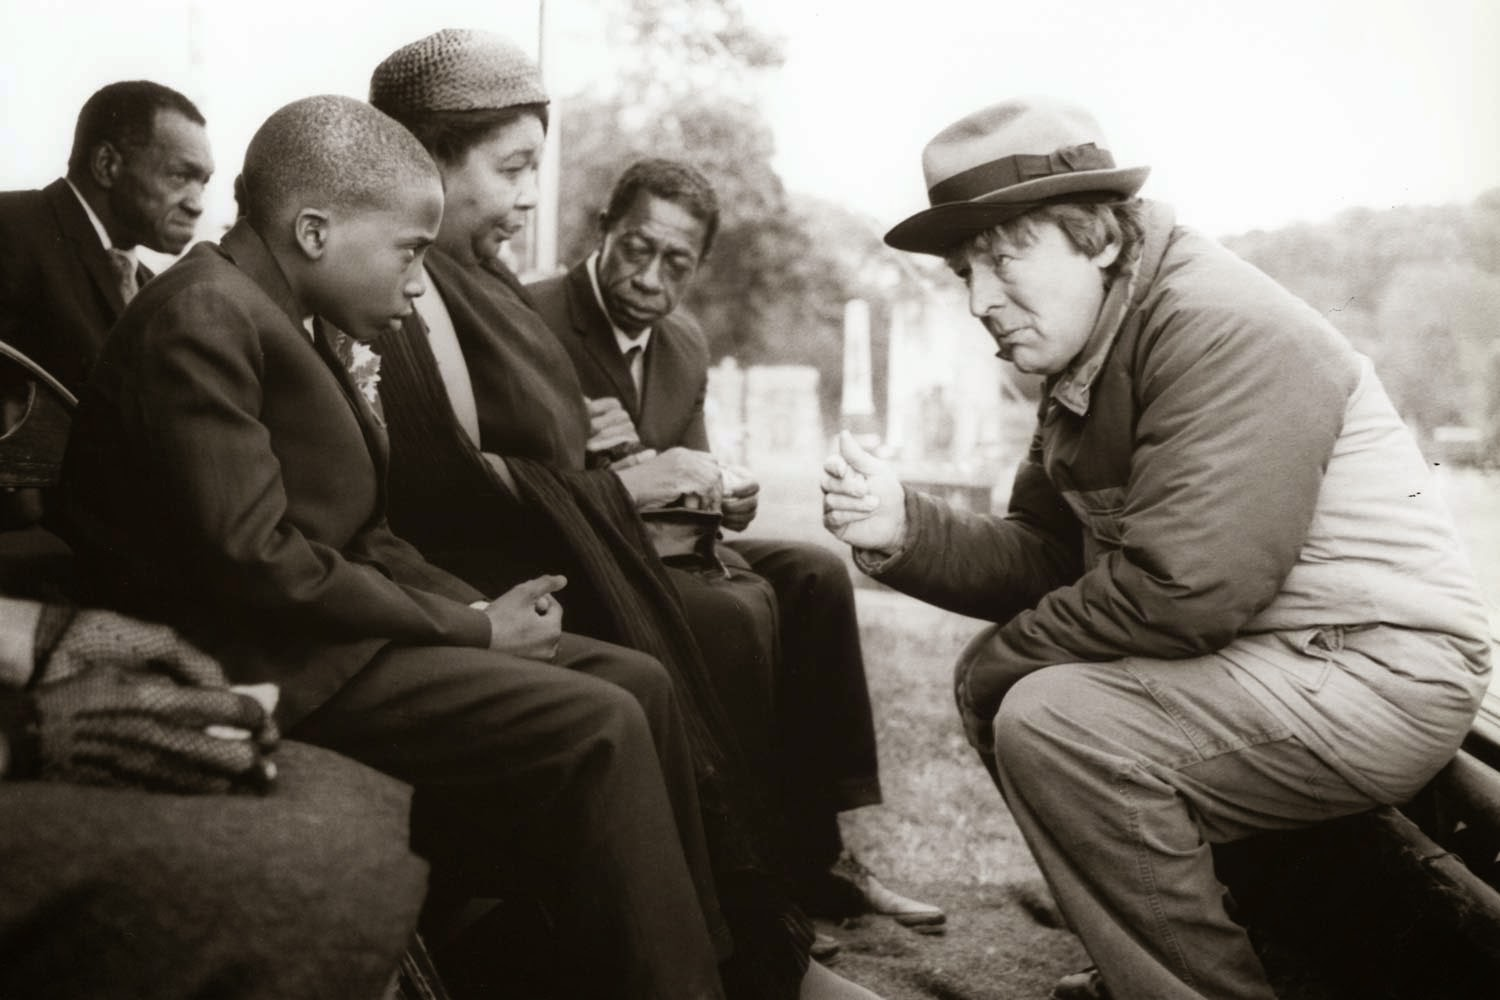 passion for movies mississippi burning a contemplative civil passion for movies